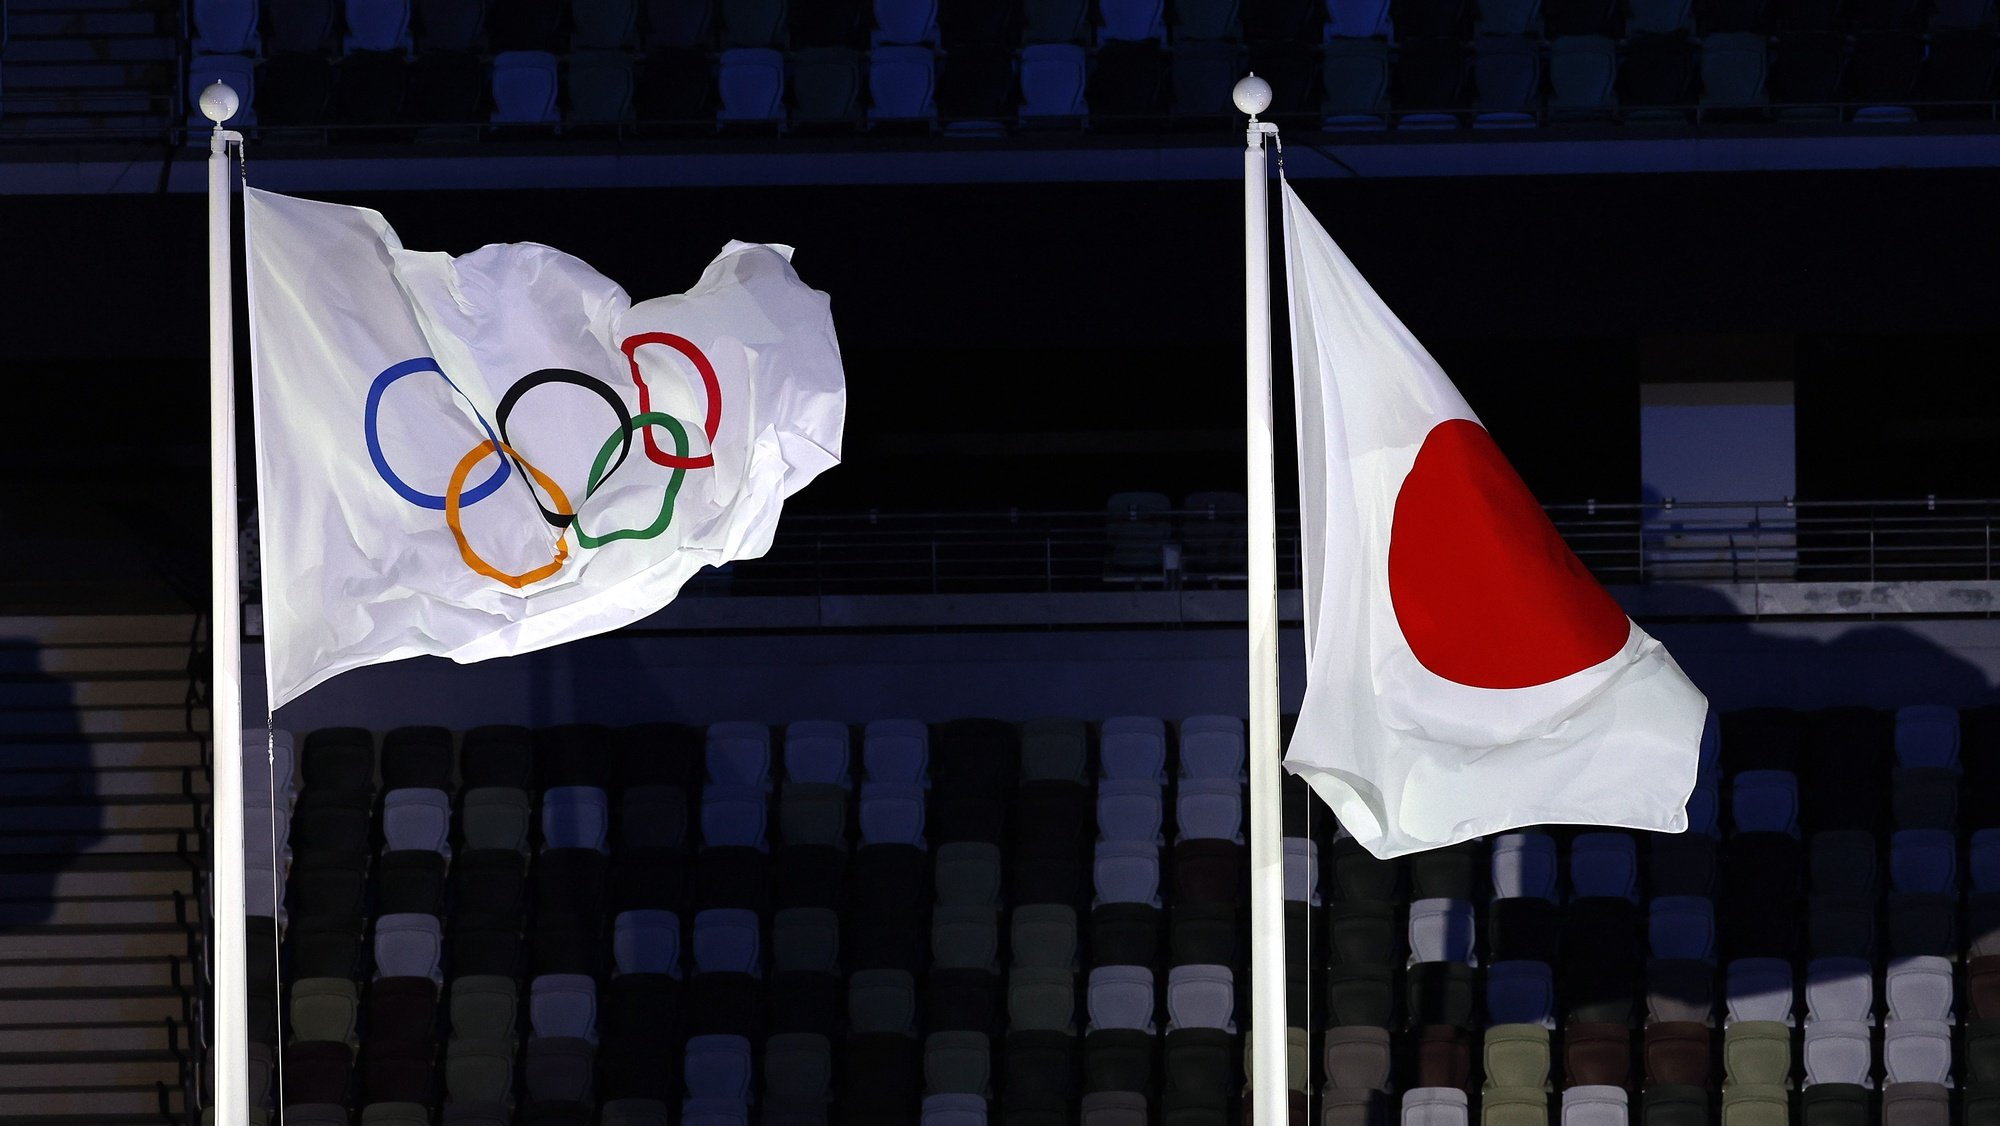 epa09360022 The Olympic flag flies next to the Japanese flag during the Opening Ceremony of the Tokyo 2020 Olympic Games at the Olympic Stadium in Tokyo, Japan, 23 July 2021.  EPA/RUNGROJ YONGRIT